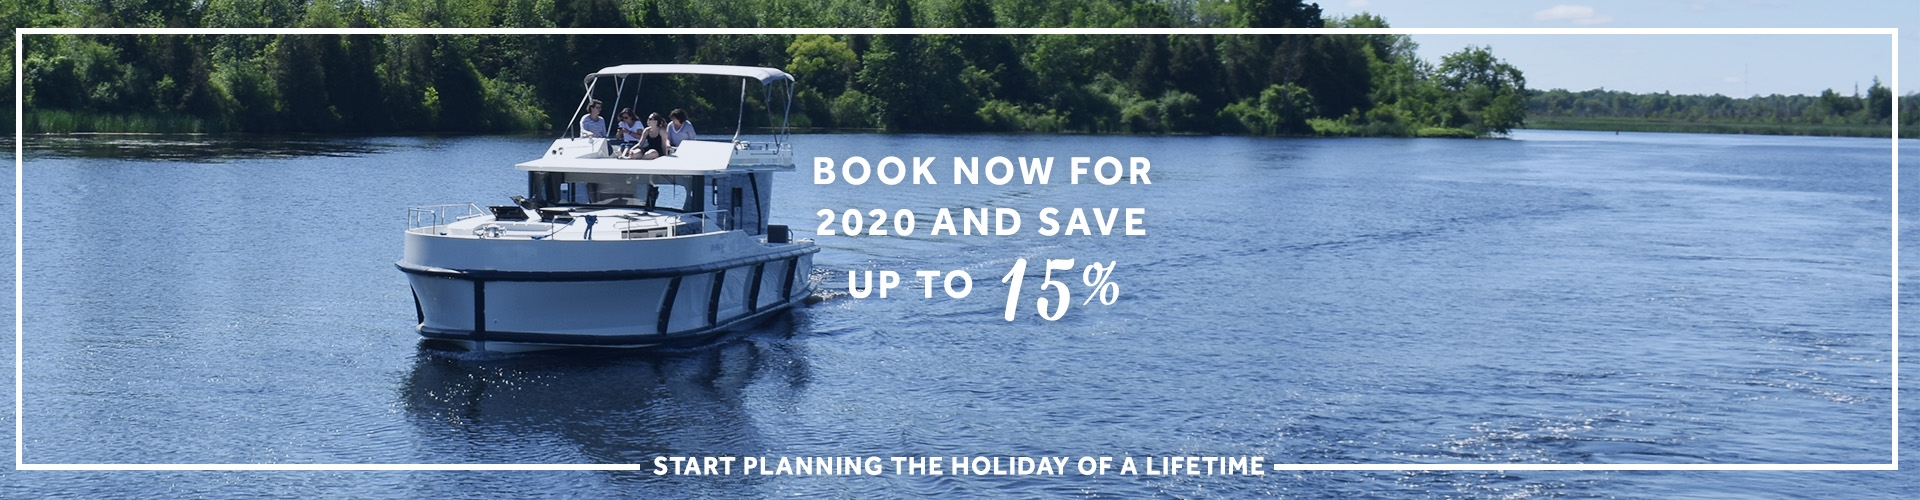 Book now for 2020 and save up to 15%